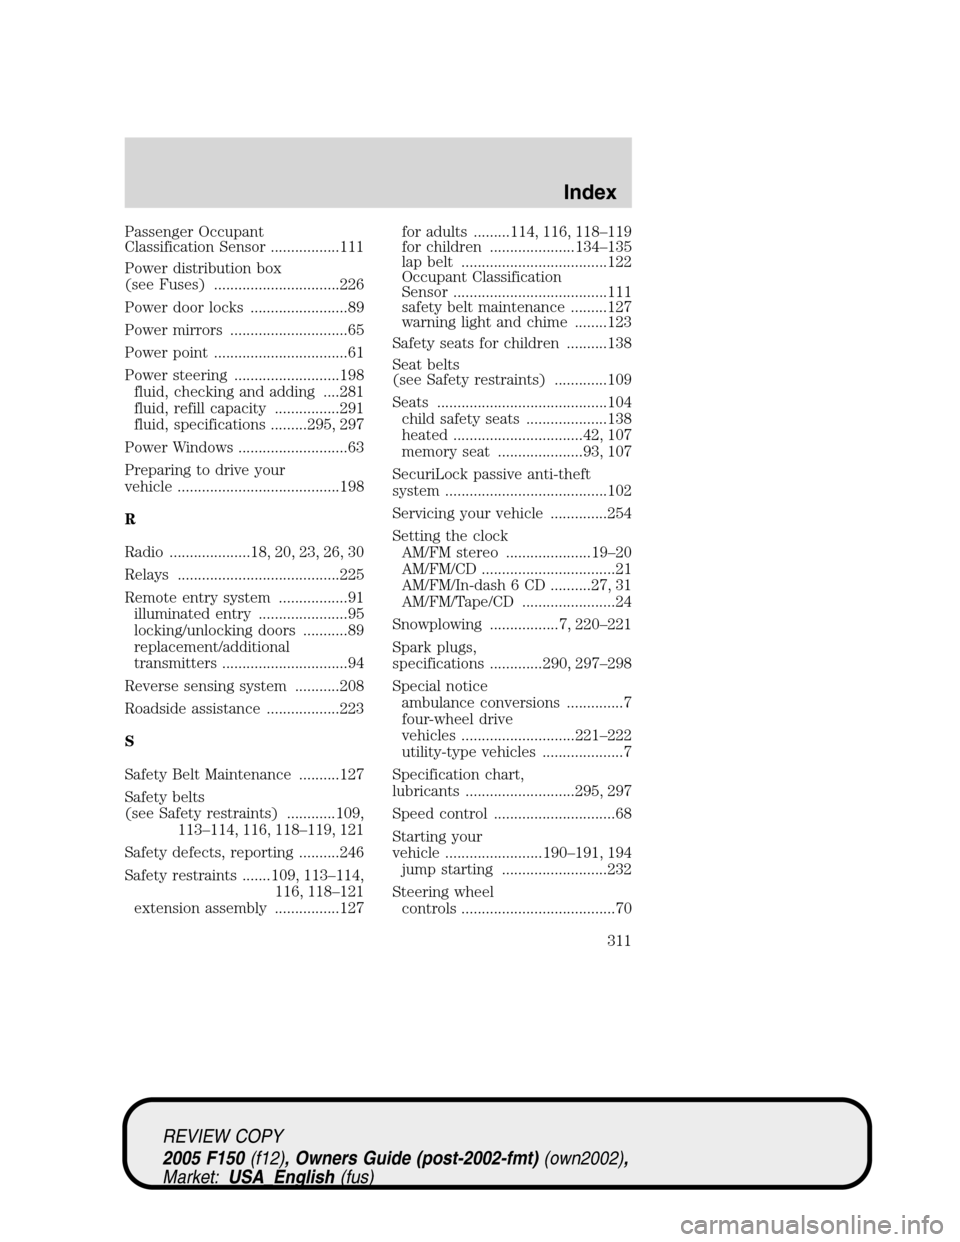 hight resolution of ford f150 2005 11 g owners manual page 311